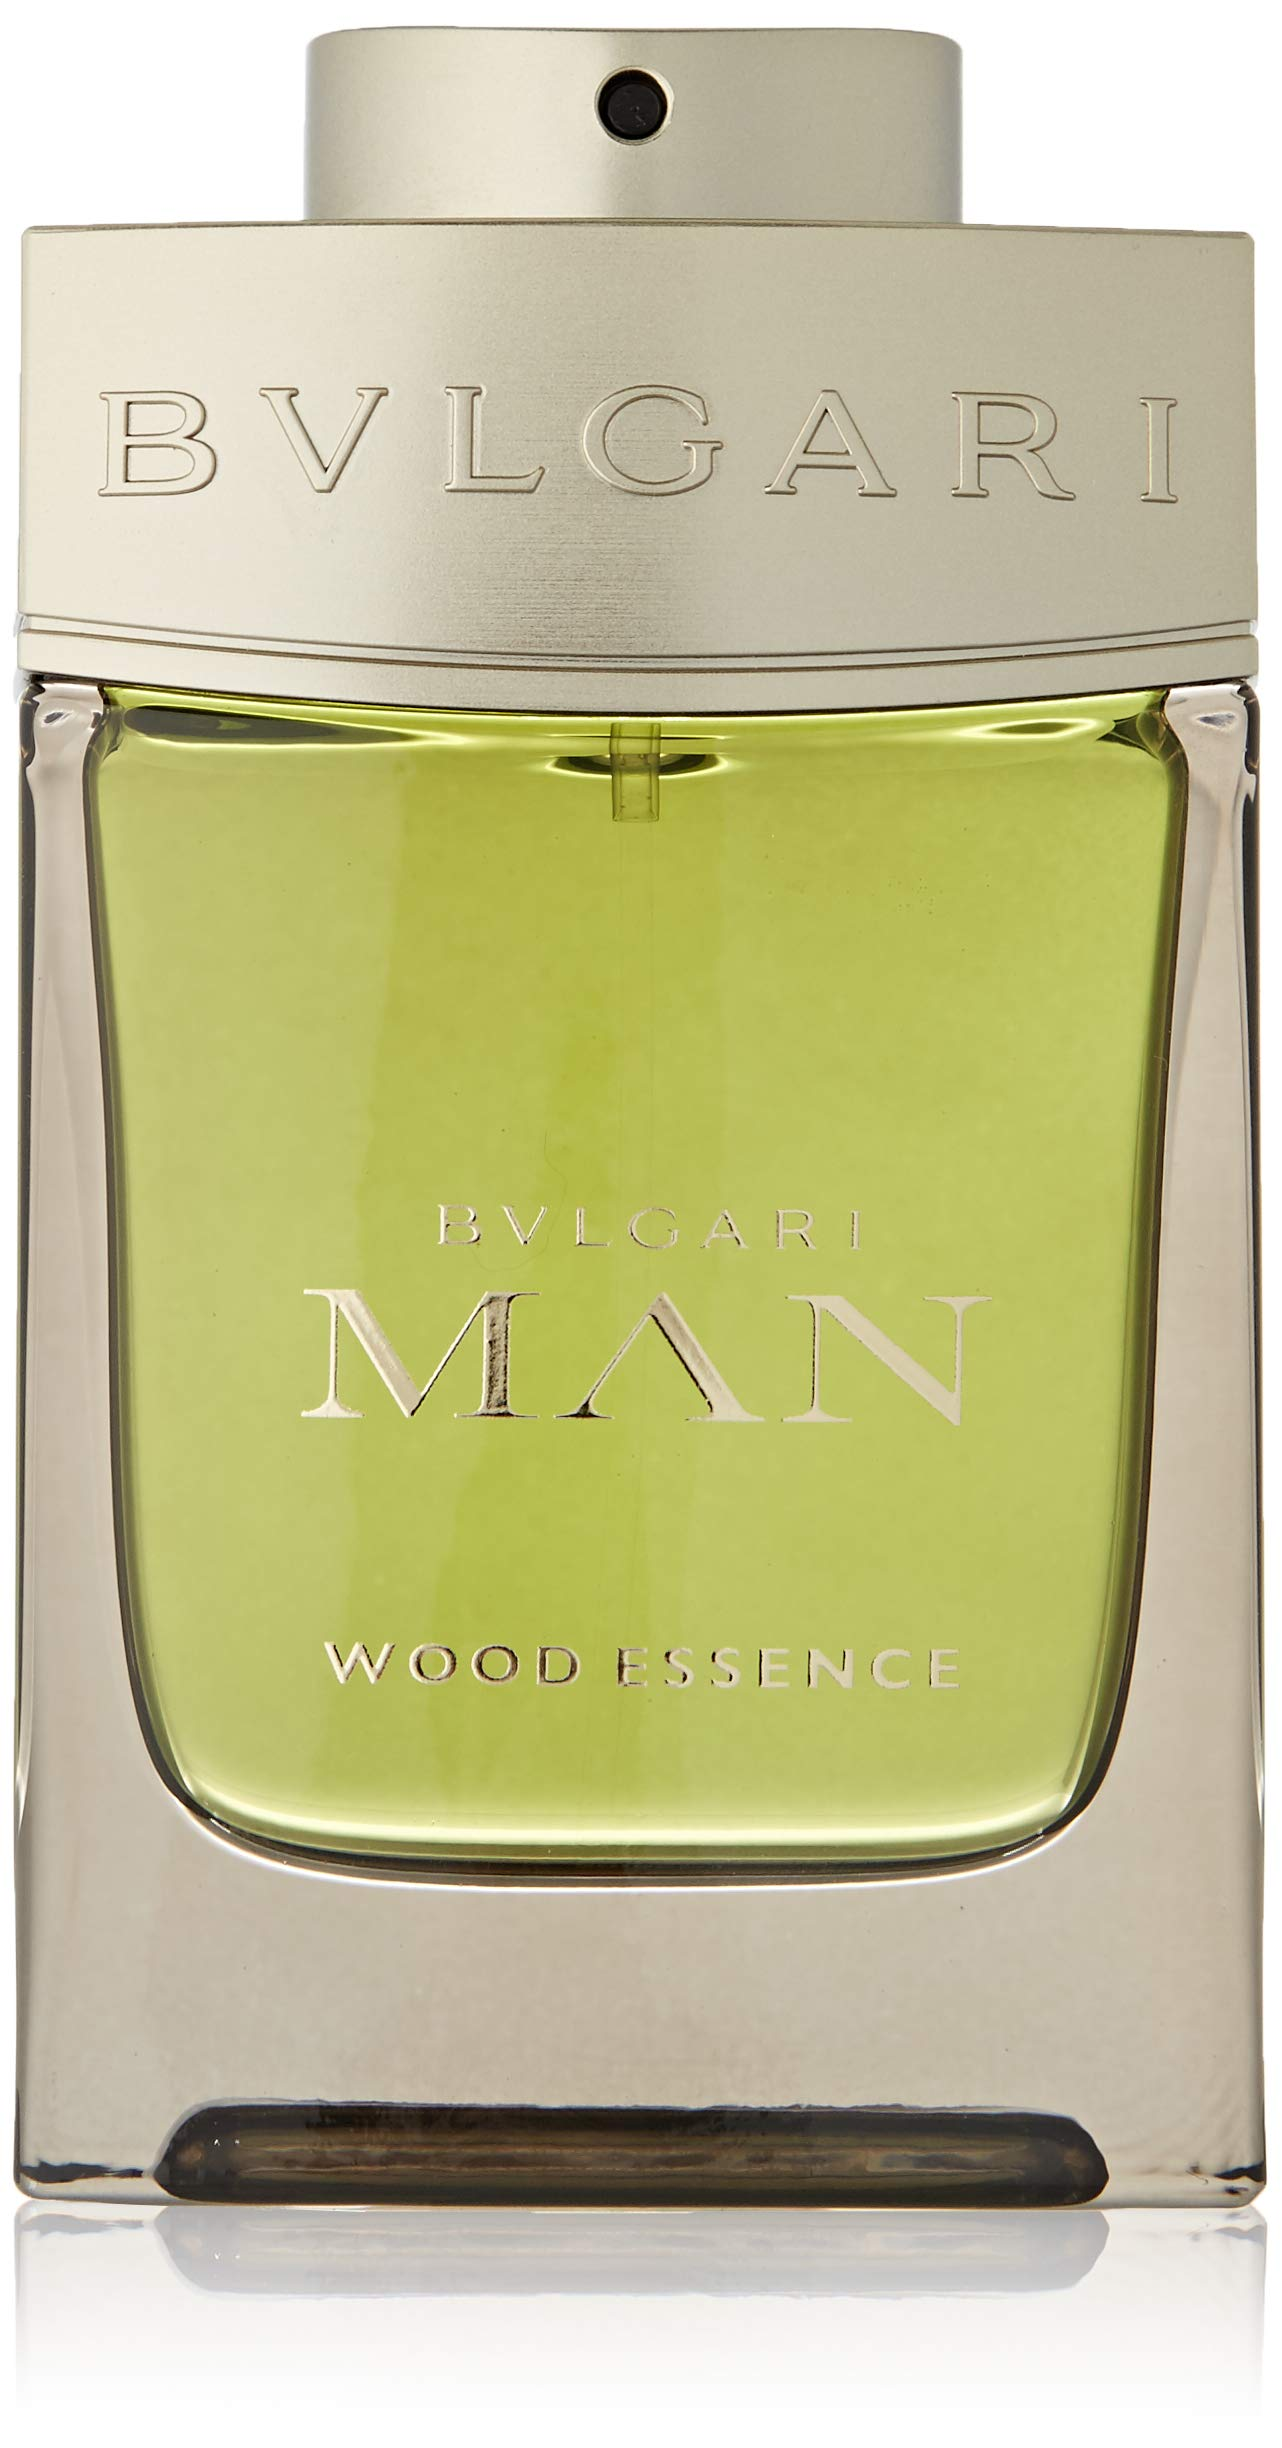 Bvlgari Bvlgari Man Wood Essence 3.4 Oz Eau De Parfum Spray, 3.4 Oz, one size